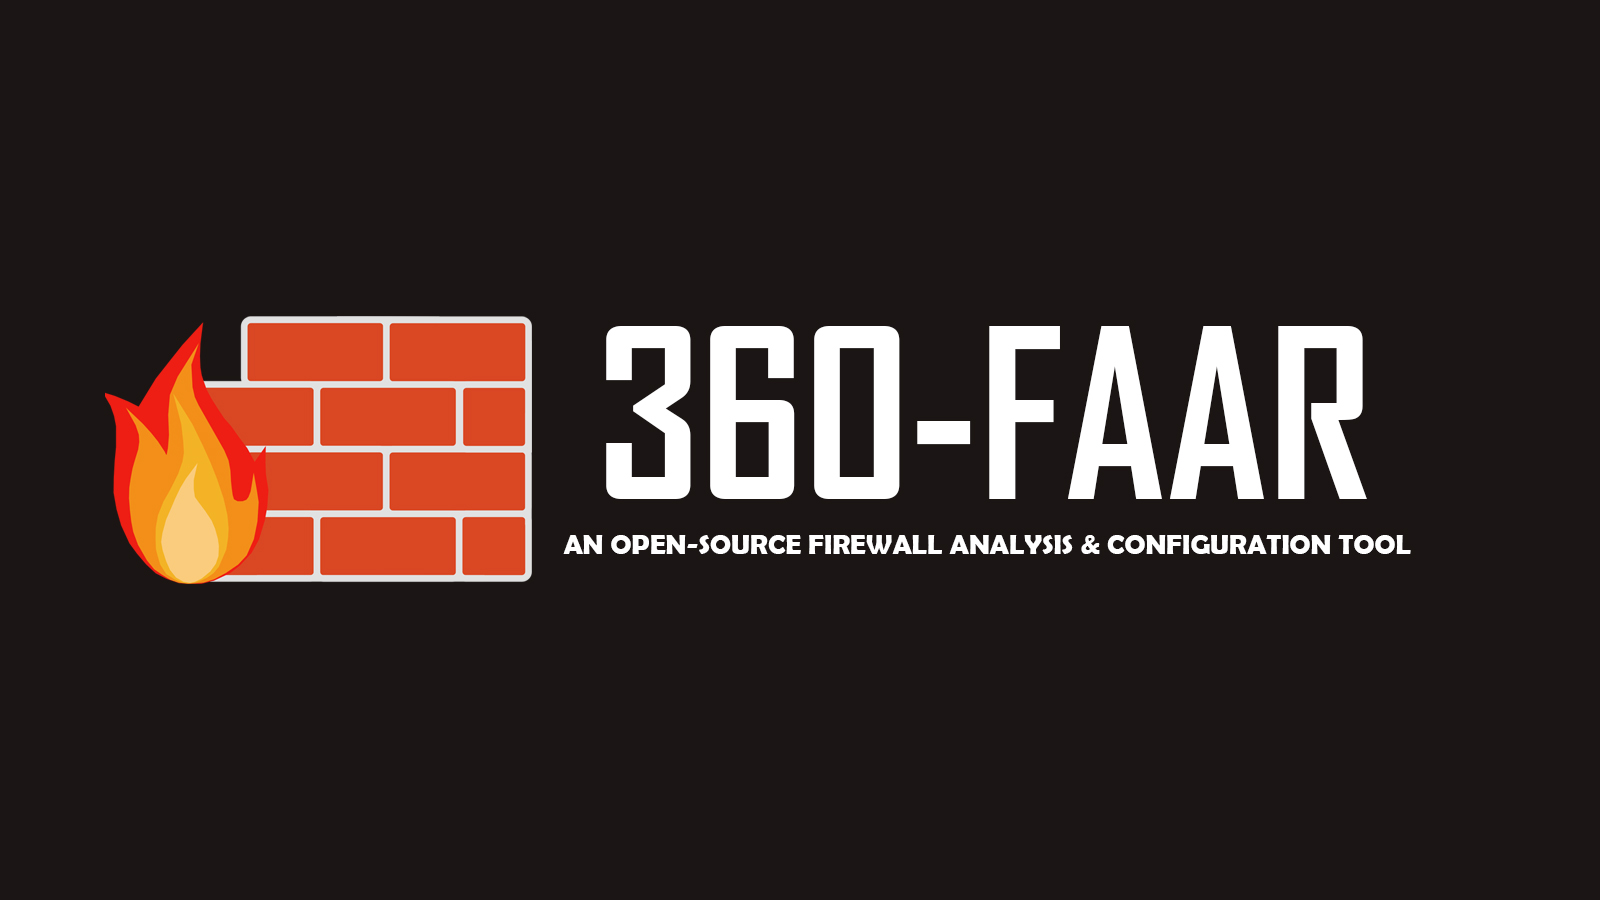 360-FAAR - An Open-source Firewall Analysis and Configuration Tool